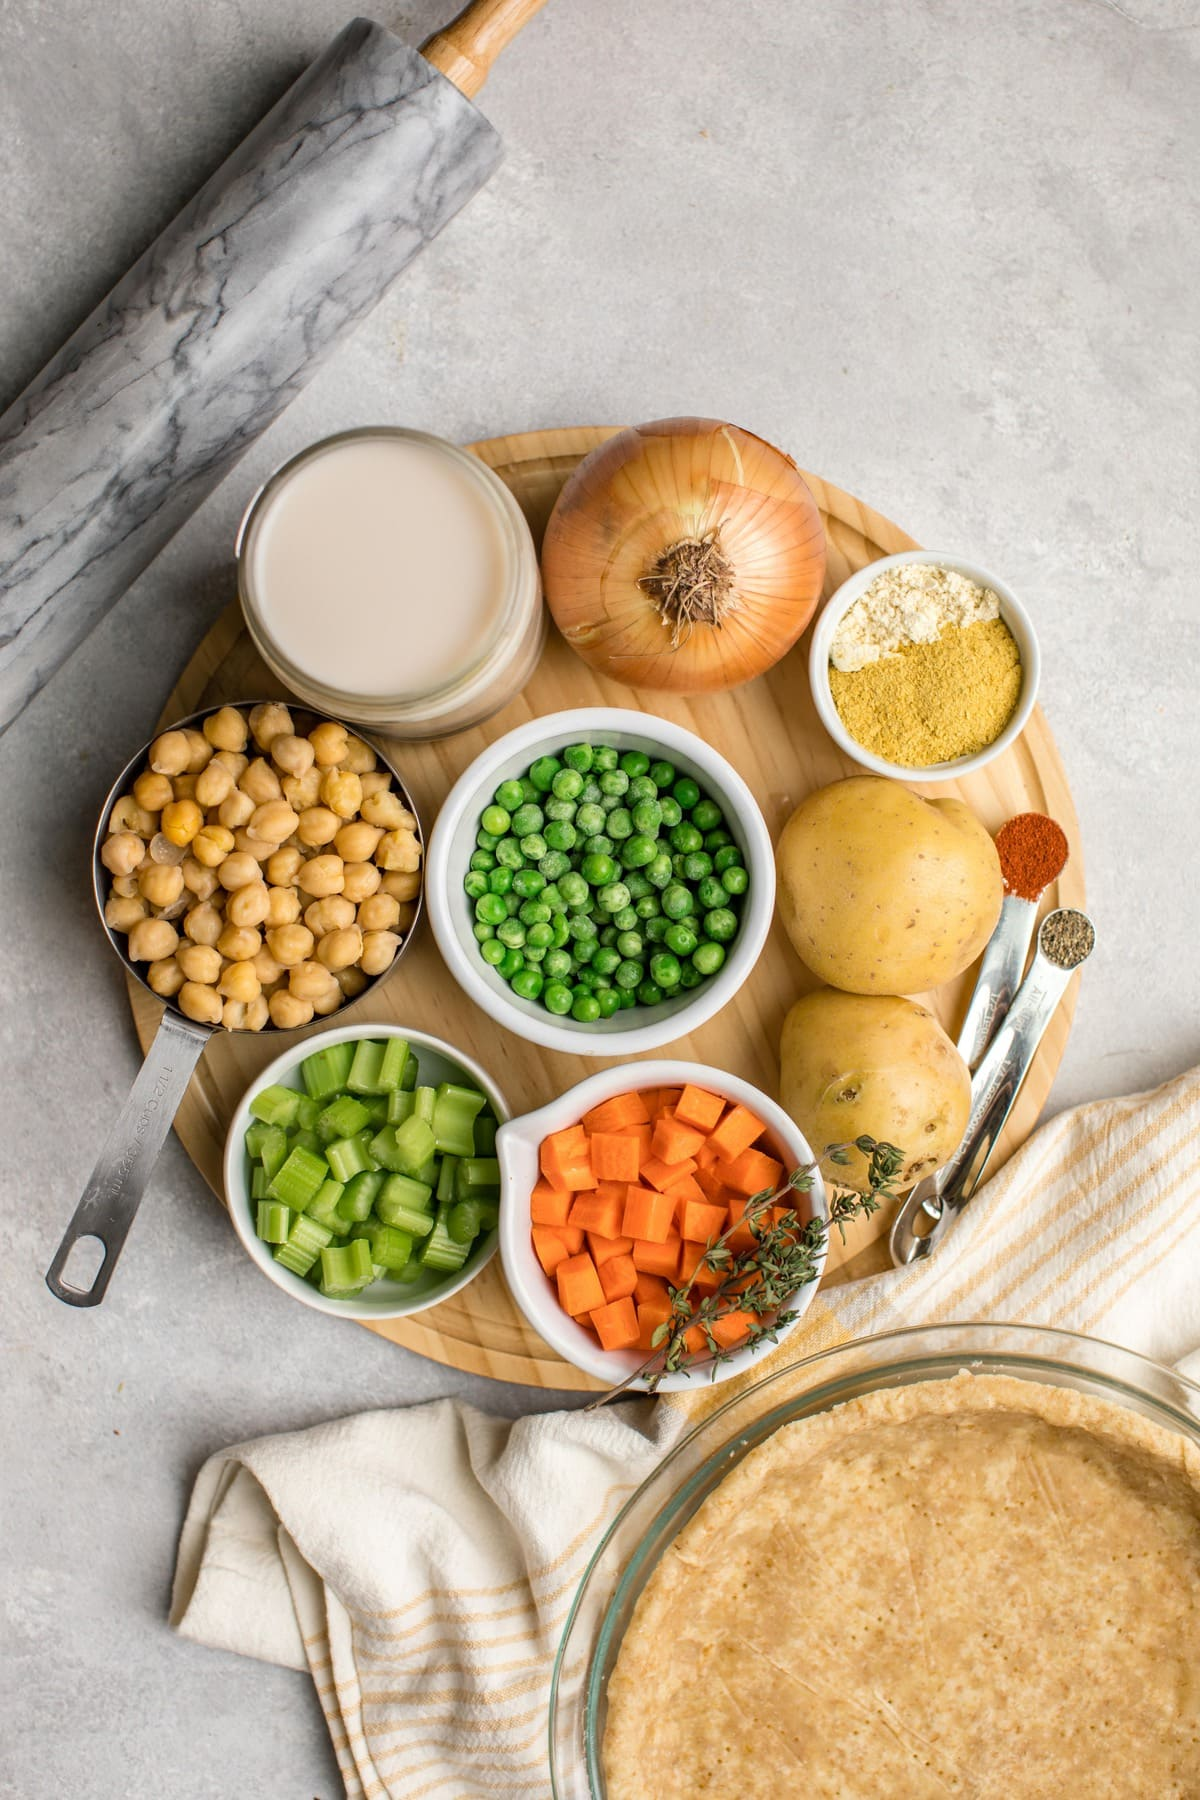 ingredients for chickpea pot pie arranged on circular wood cutting board